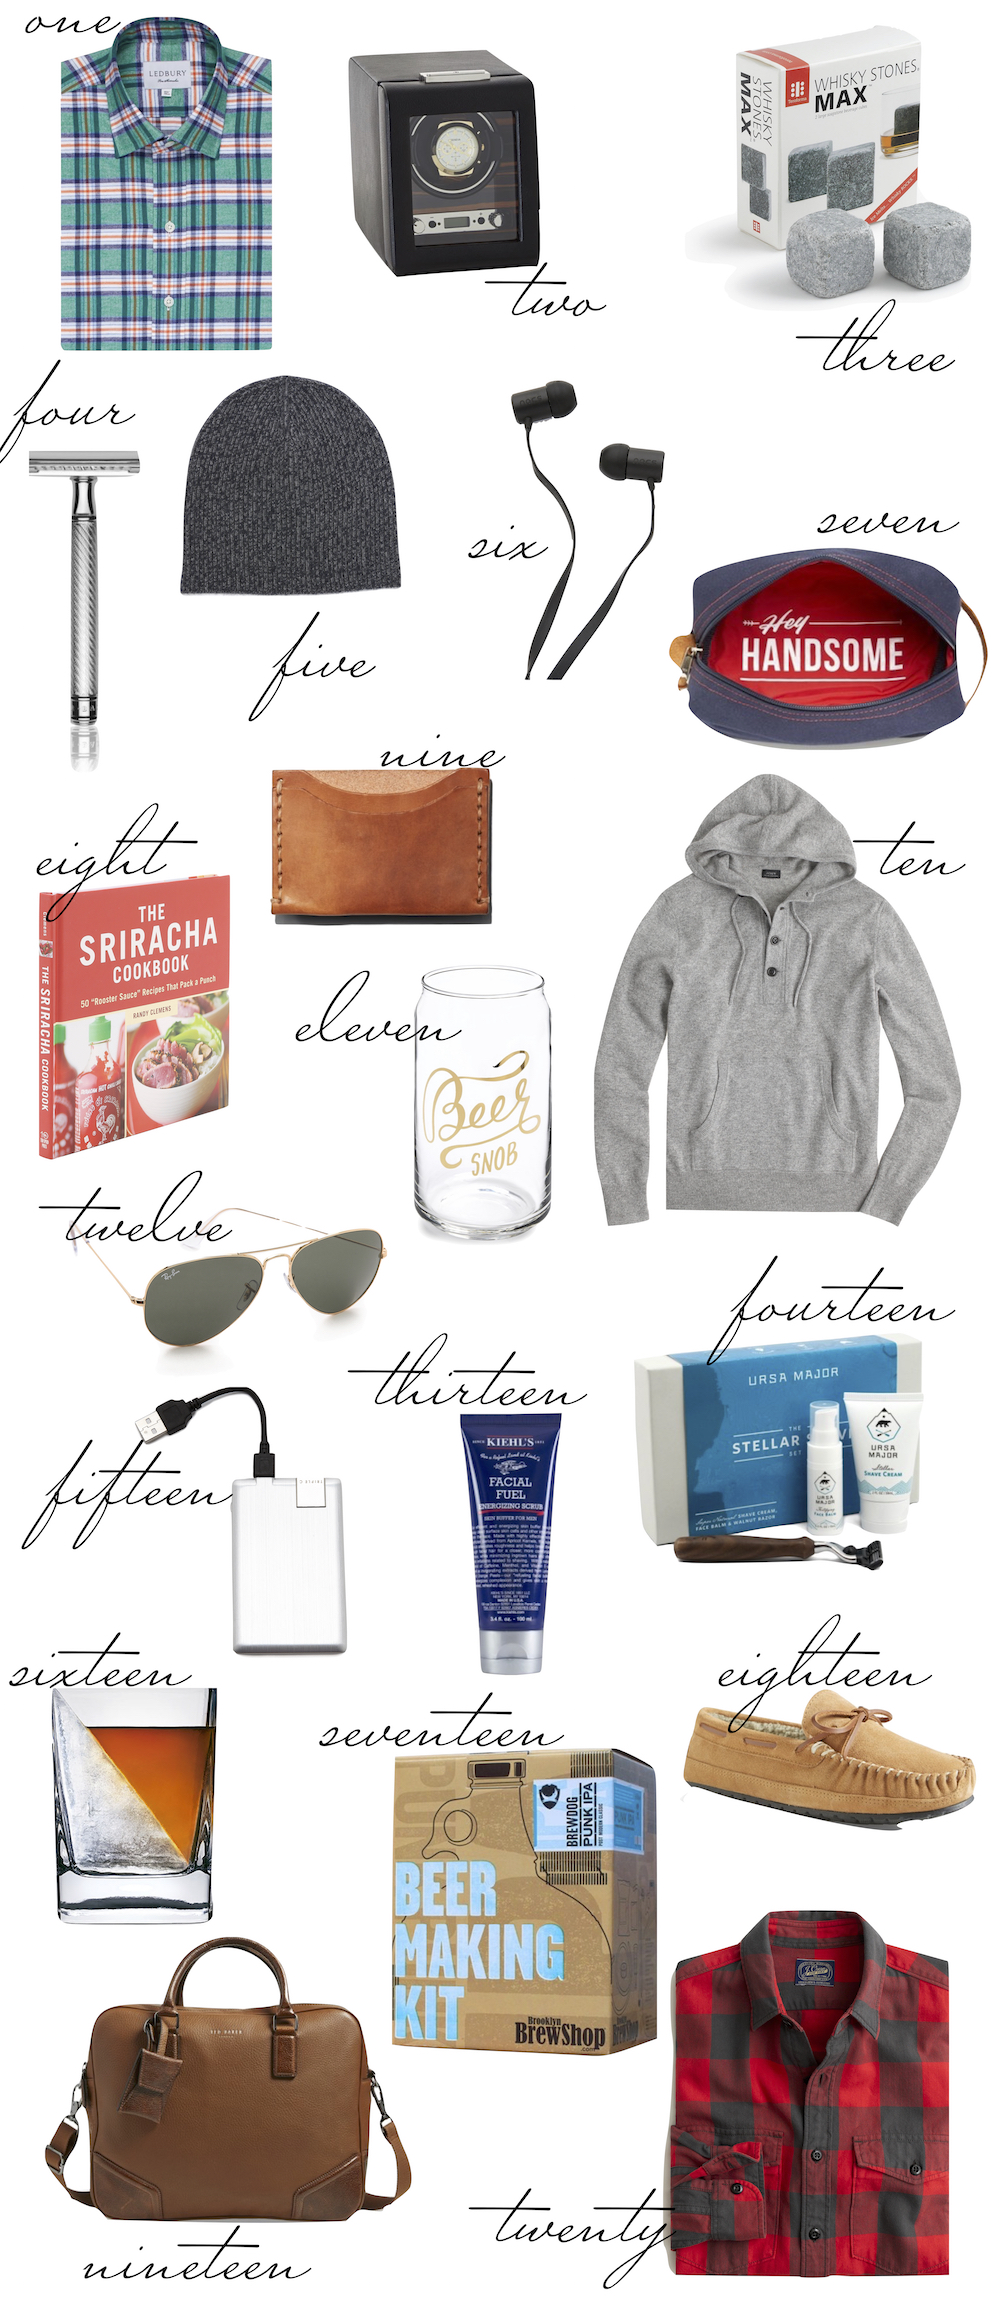 The Stripe Gift Guide- the dude